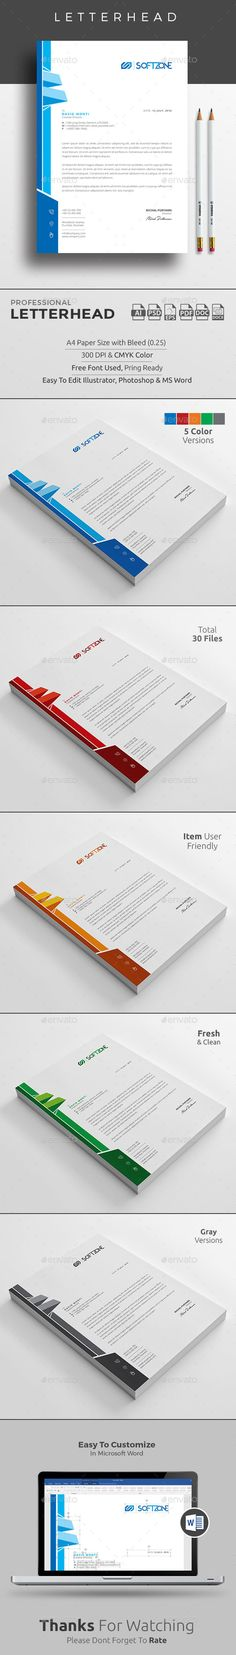 Buy Letterhead by themedevisers on GraphicRiver. Corporate Letterhead Template with super modern and Corporate look. Corporate Letterhead page designs are very easy . Letterhead Printing, Stationery Printing, Letterhead Design, Letterhead Template, Stationery Items, Print Templates, Design Templates, Professional Letterhead, Mobile Ui Design